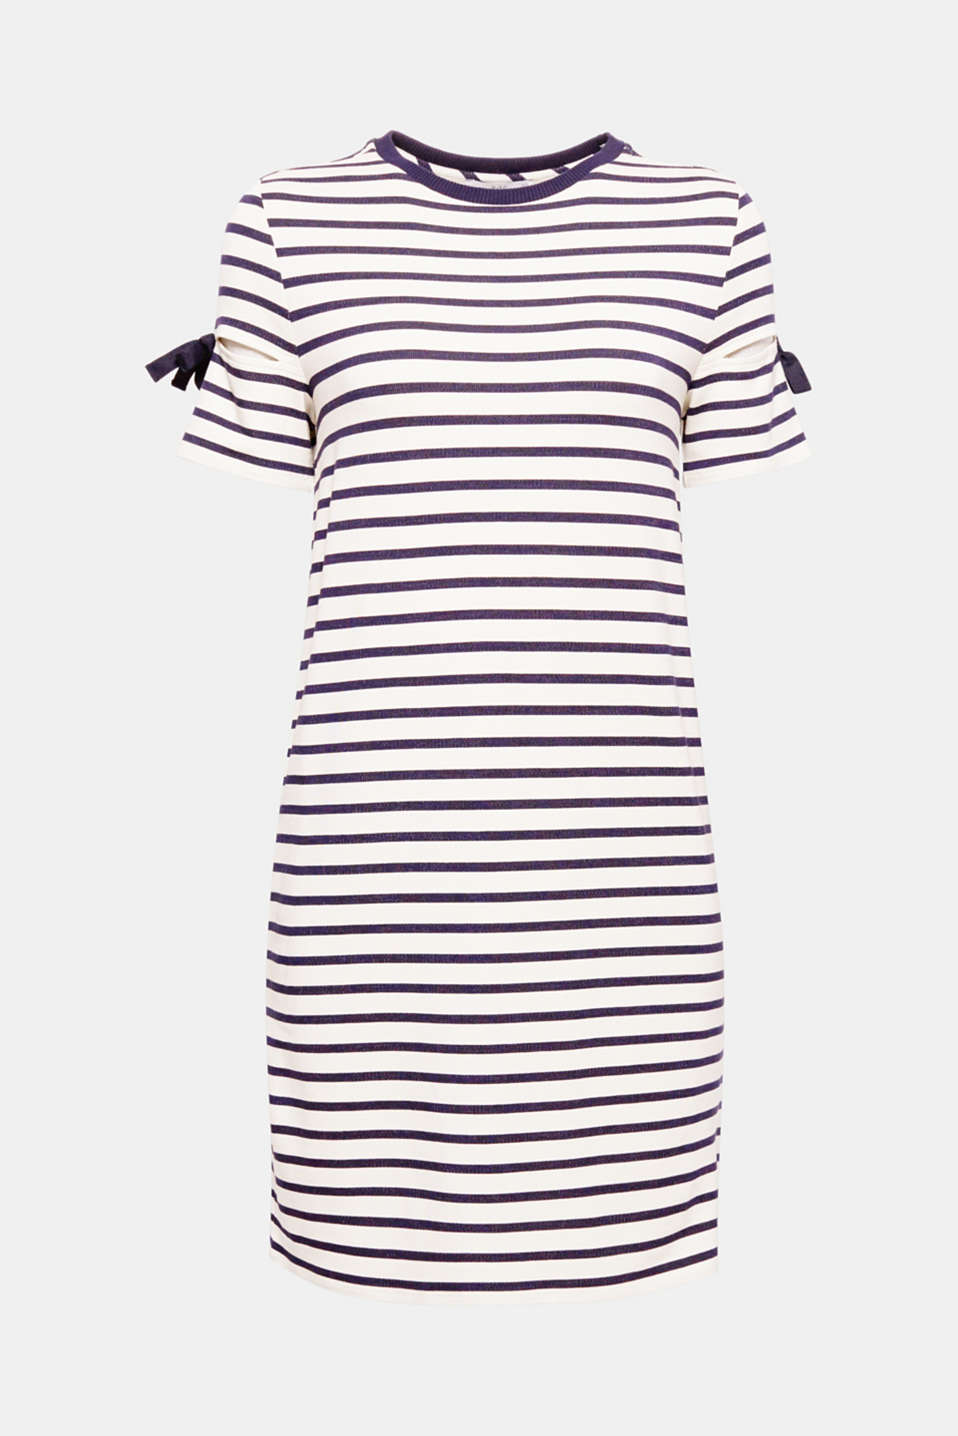 The sleeves decorated with bows and cut-outs give this nautical stripe sweatshirt dress a new, fashionable twist.